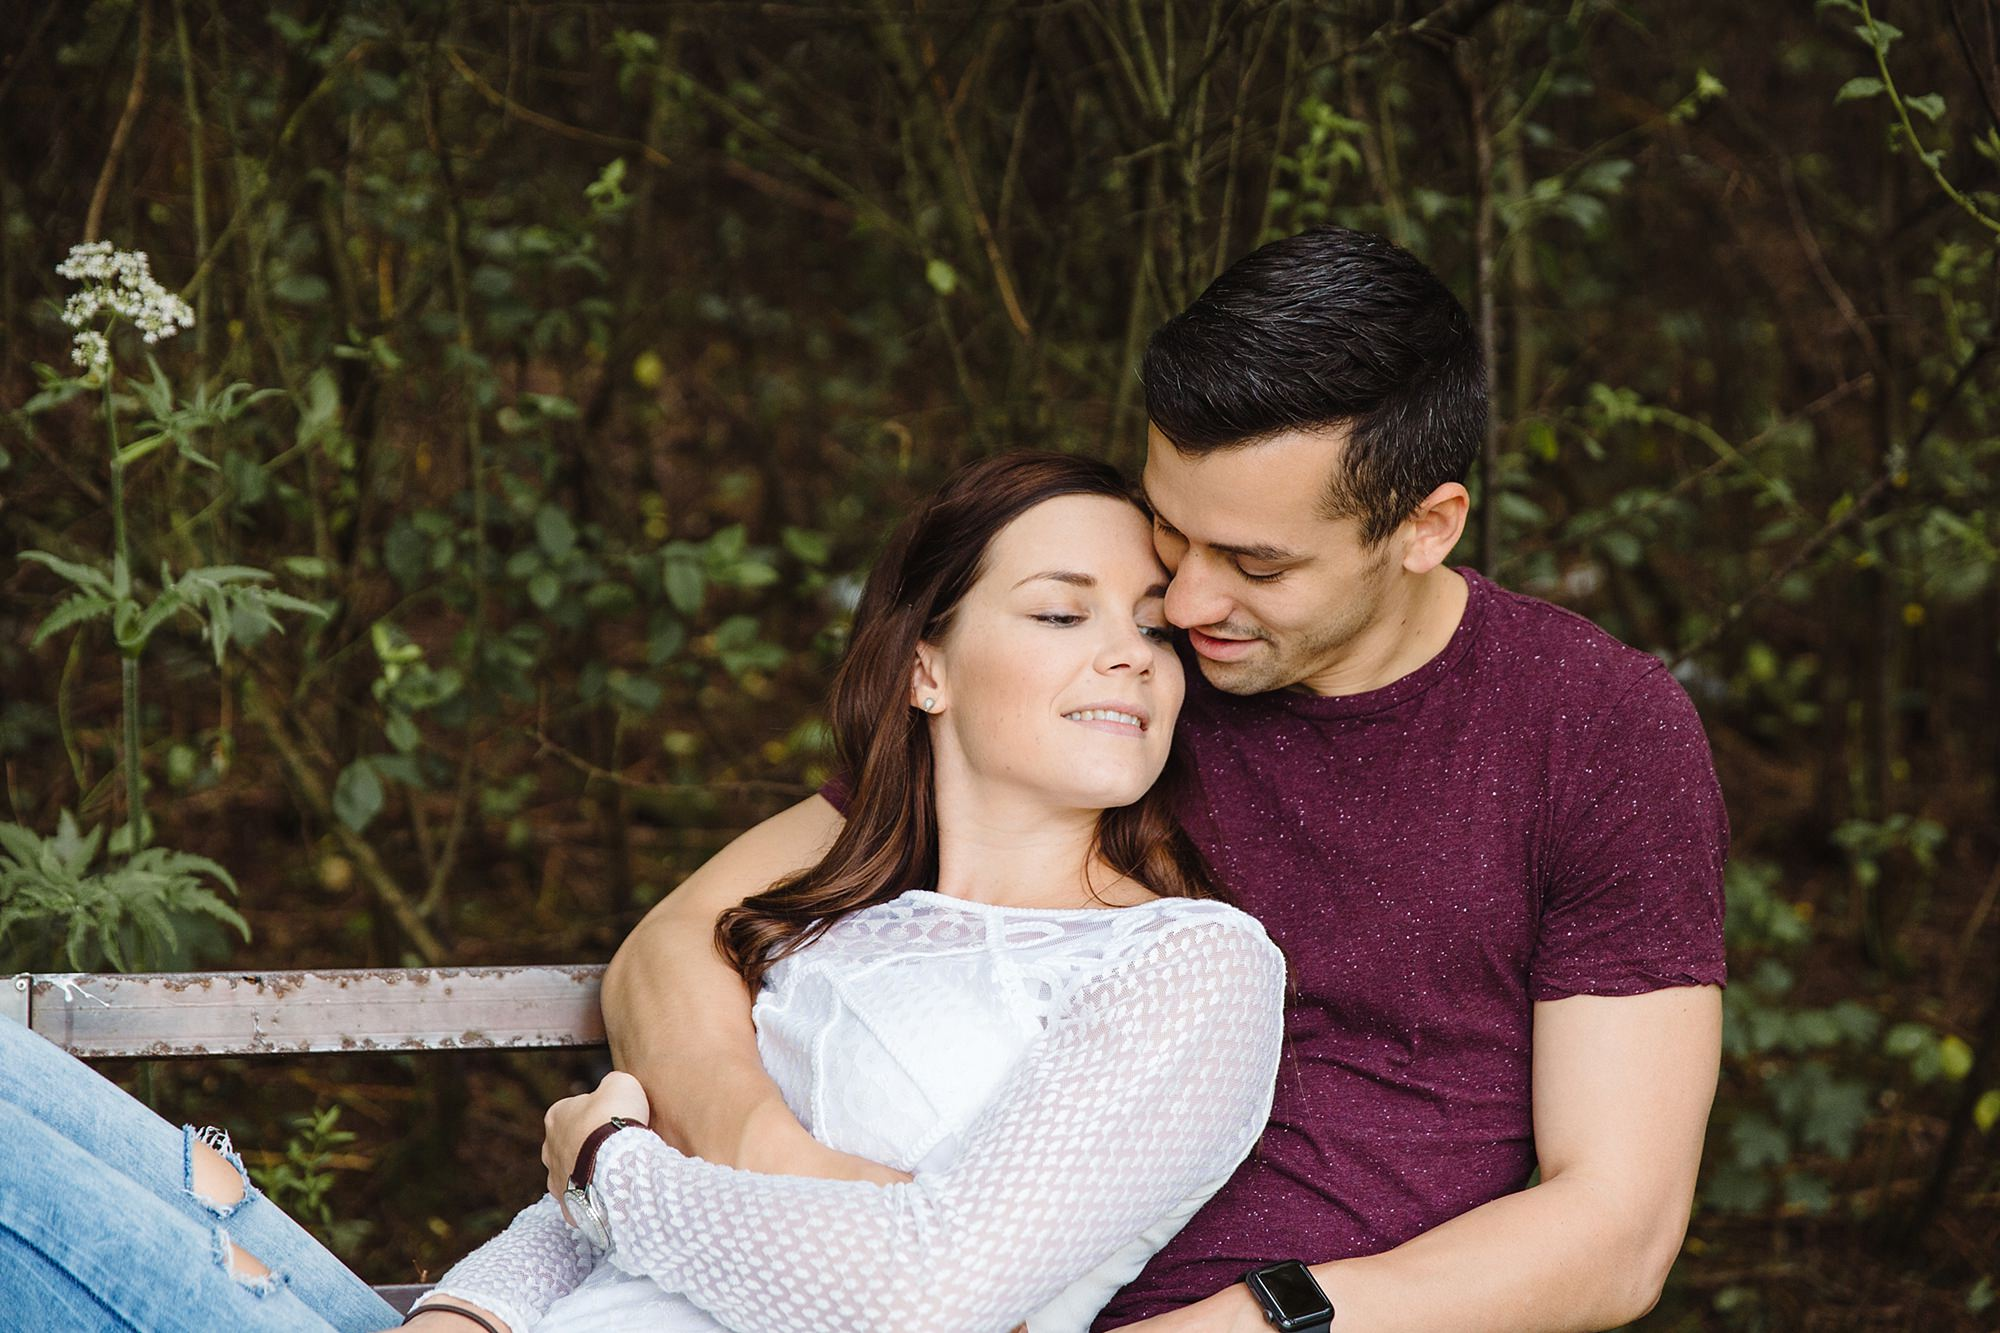 Countryside engagement photography close up portrait of couple on bench